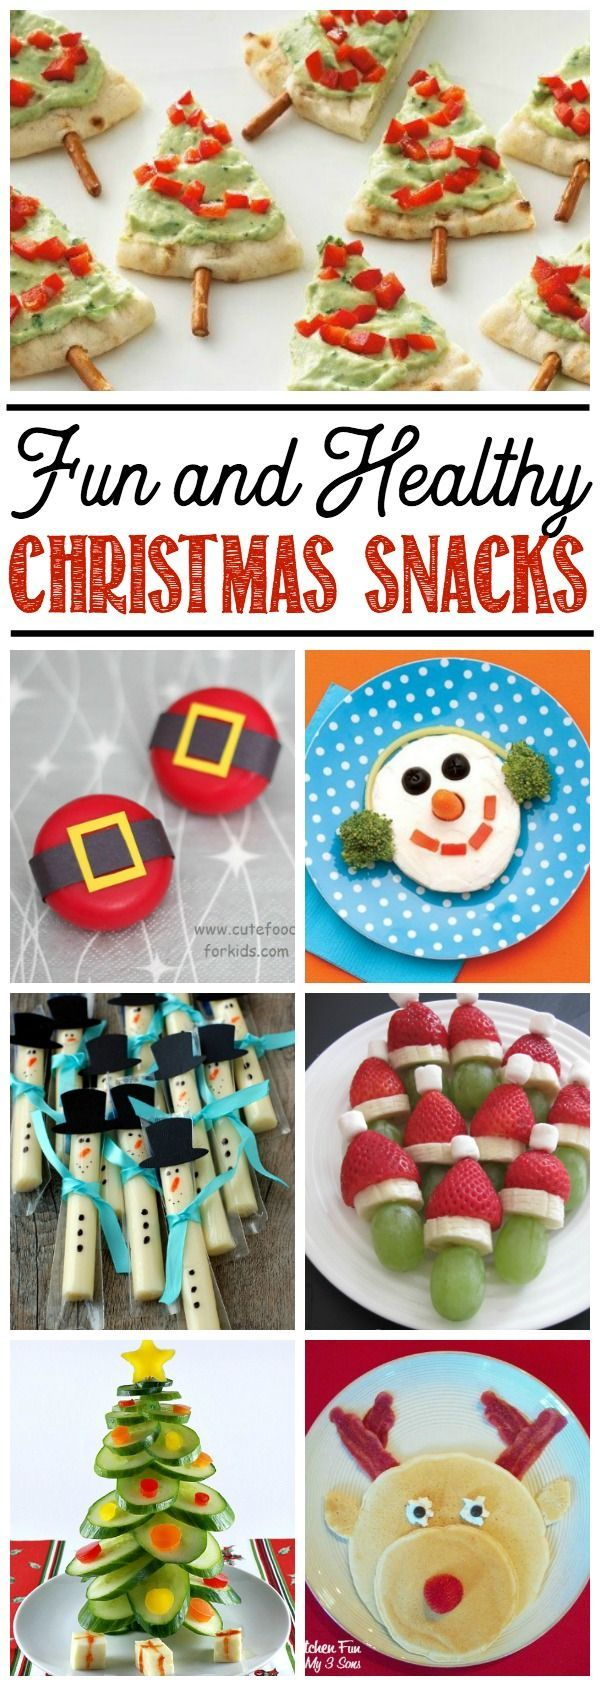 What fun Christmas food! My kids would gobble these up!